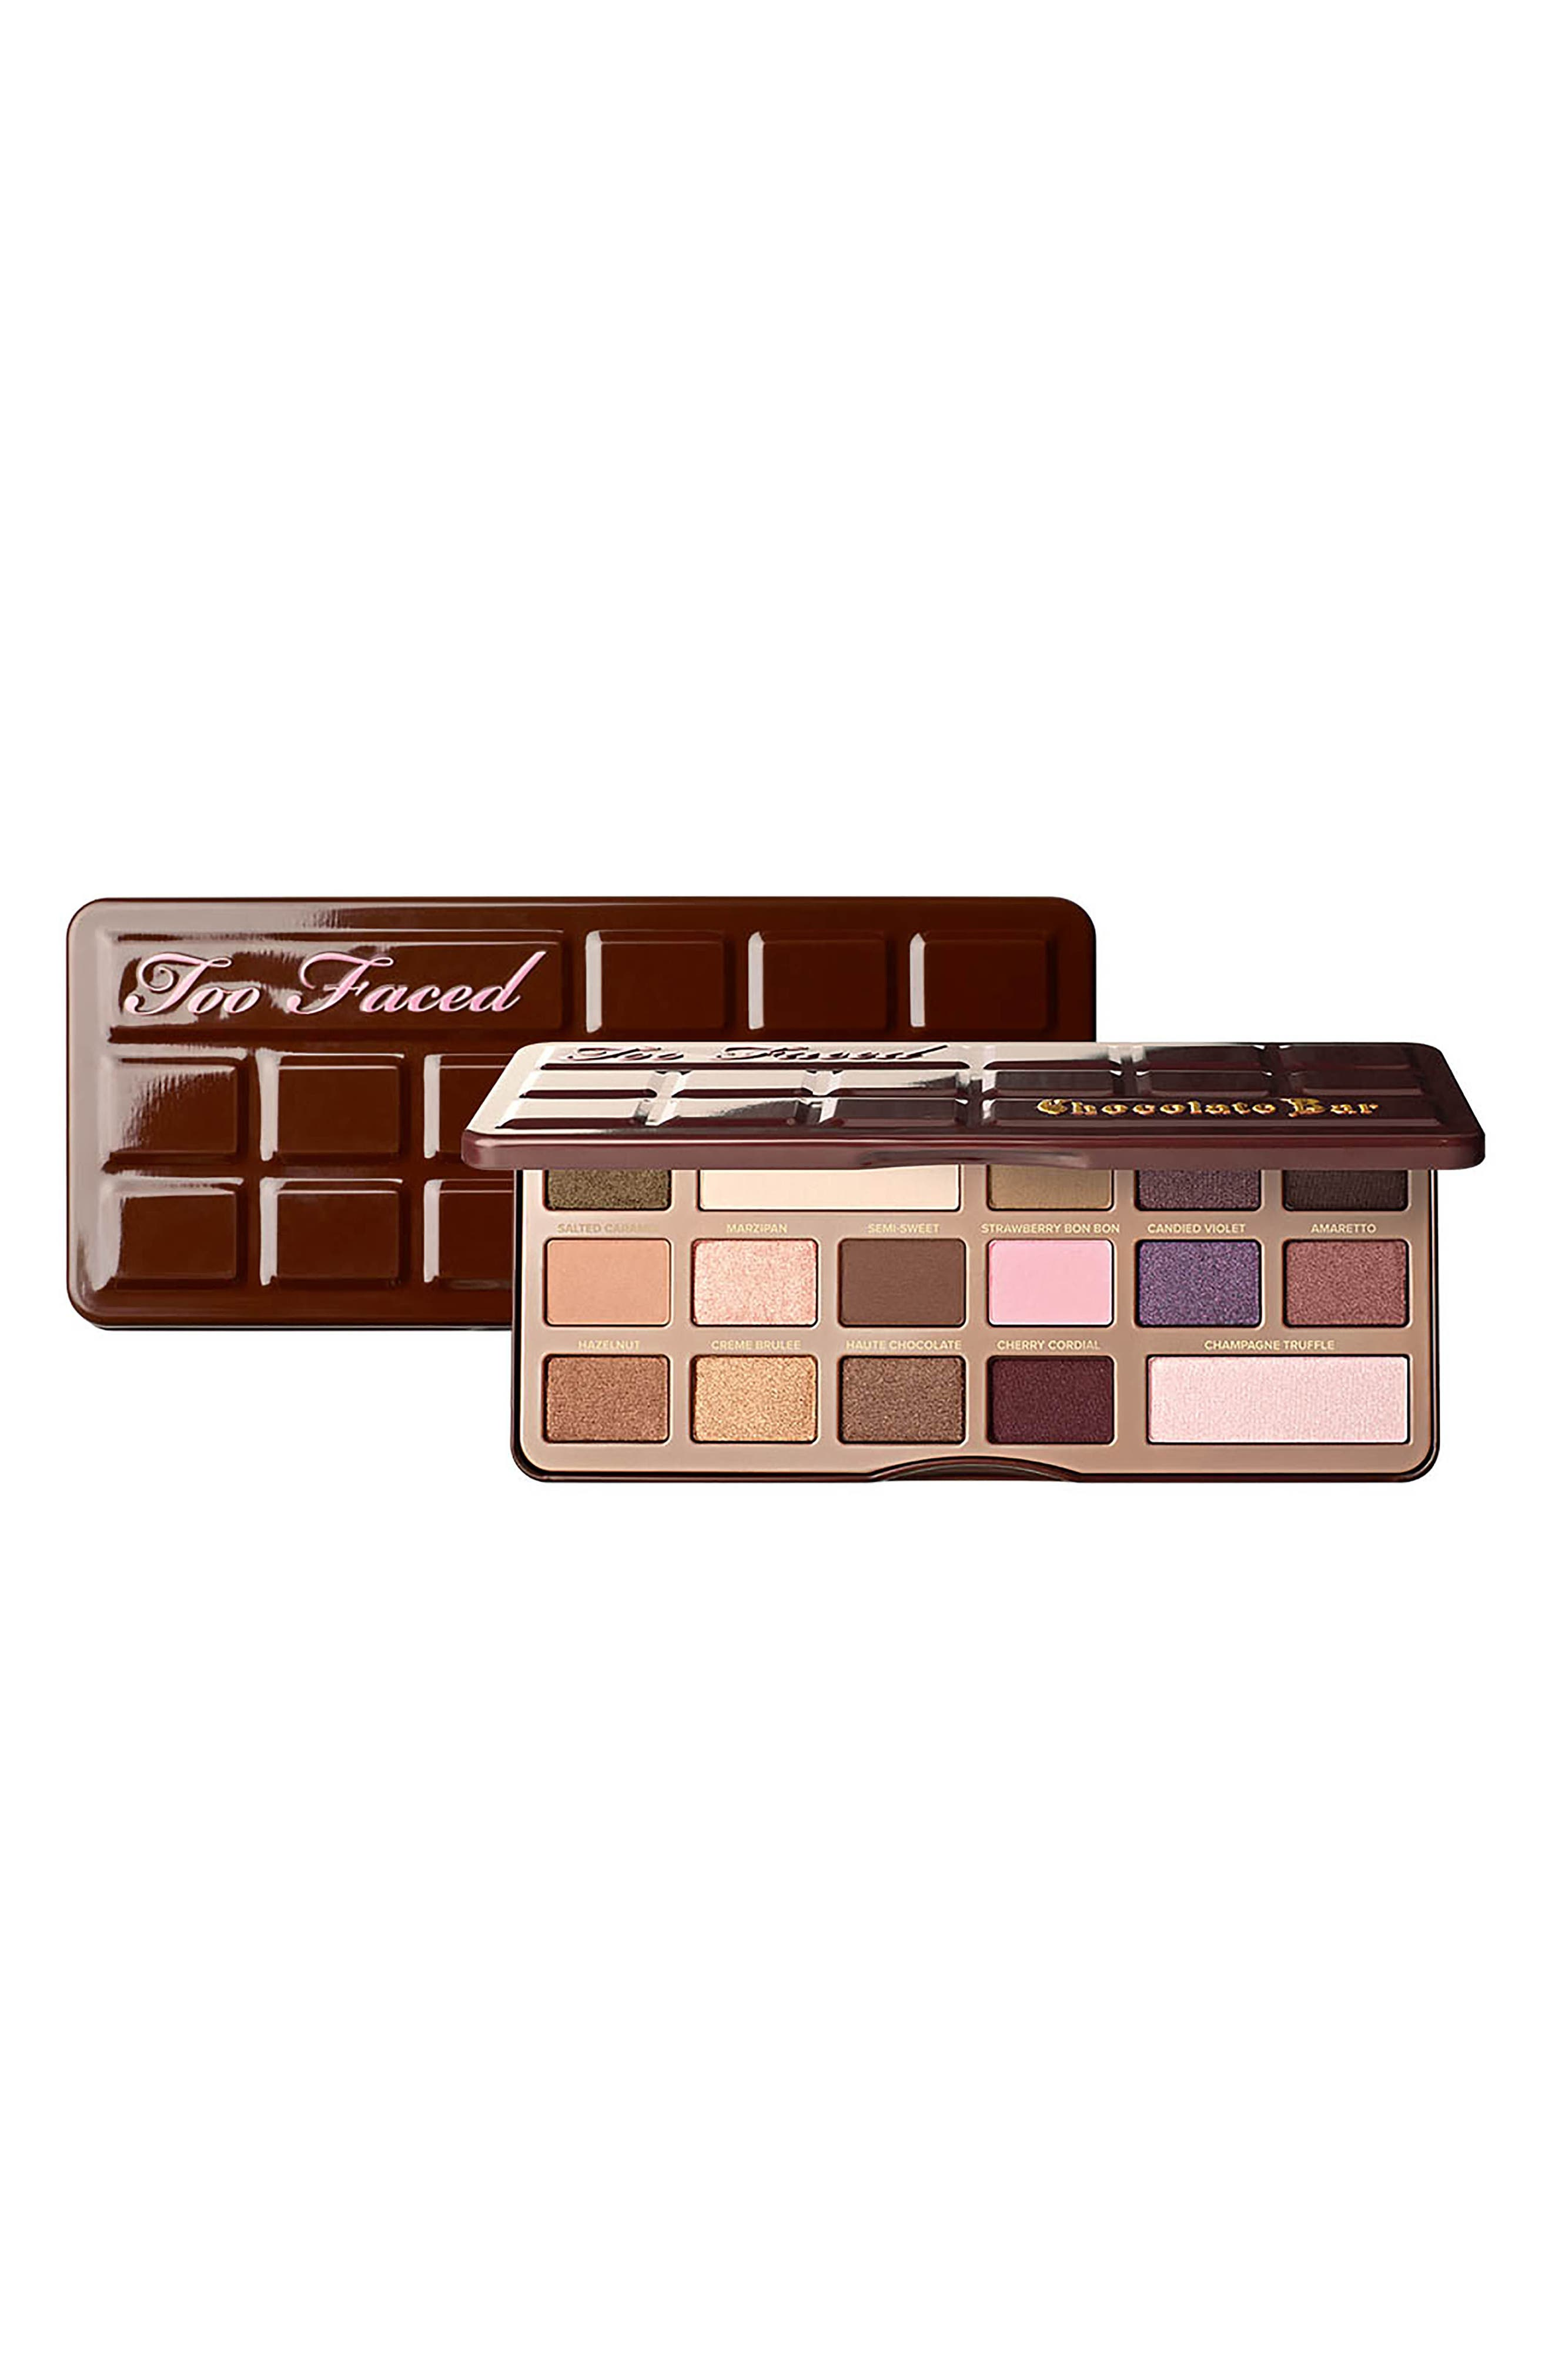 Chocolate Bar Eyeshadow Palette,                             Alternate thumbnail 6, color,                             No Color